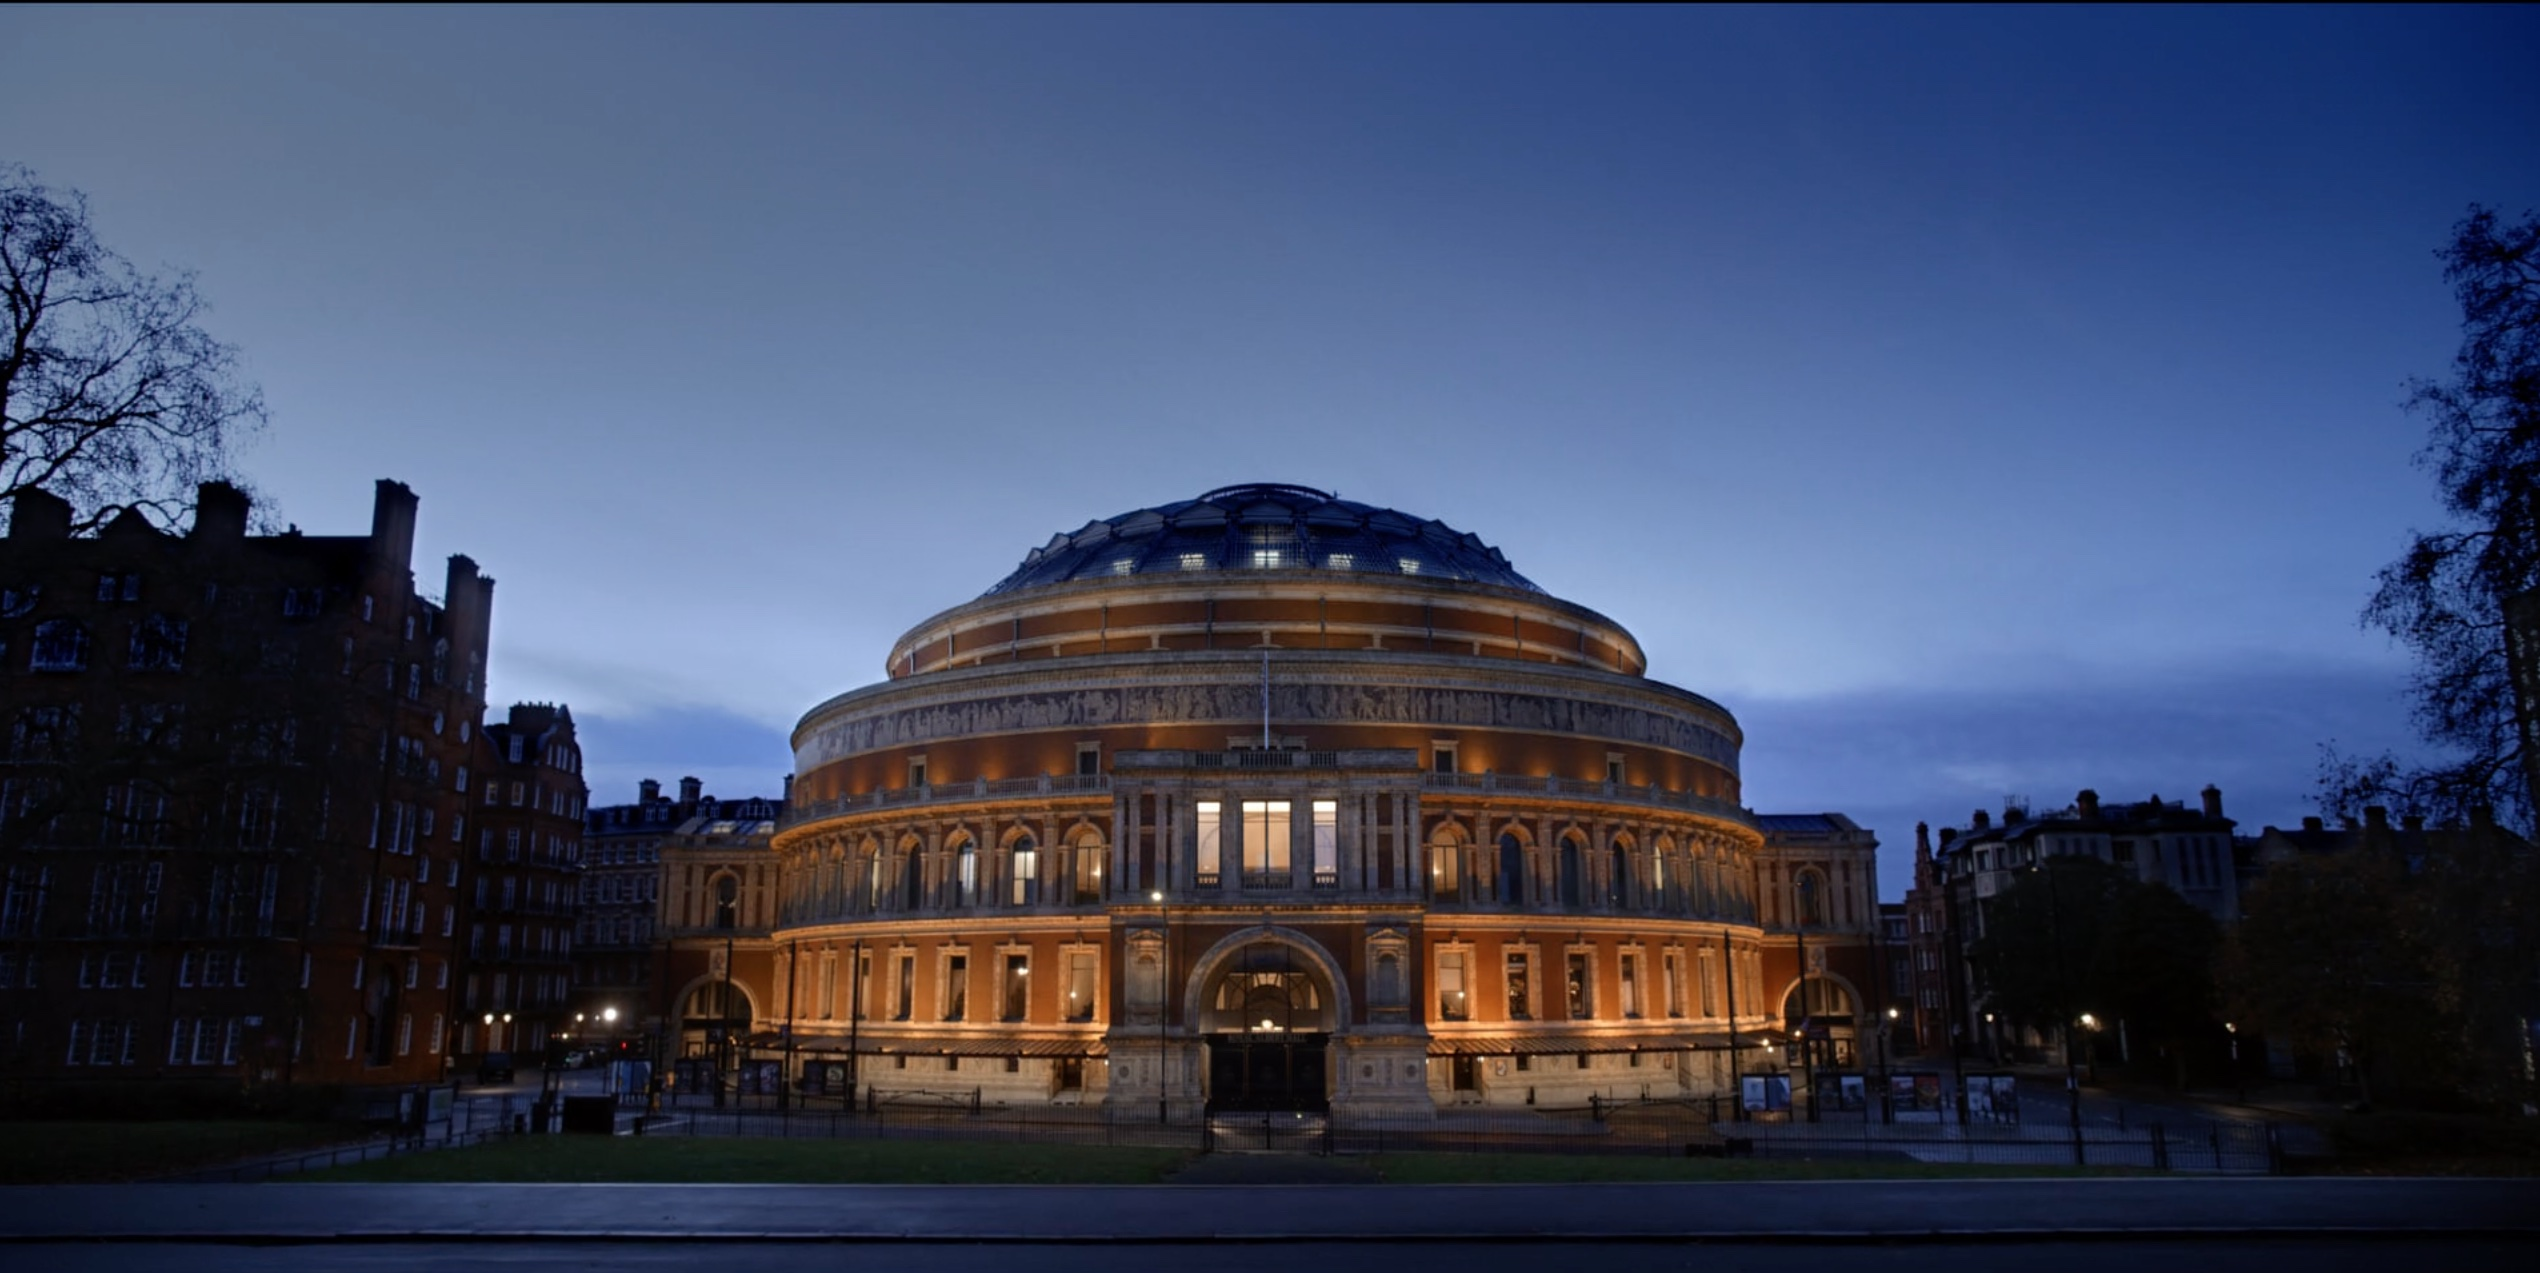 Mick Jagger Narrates New Short Film Celebrating London's Royal Albert Hall